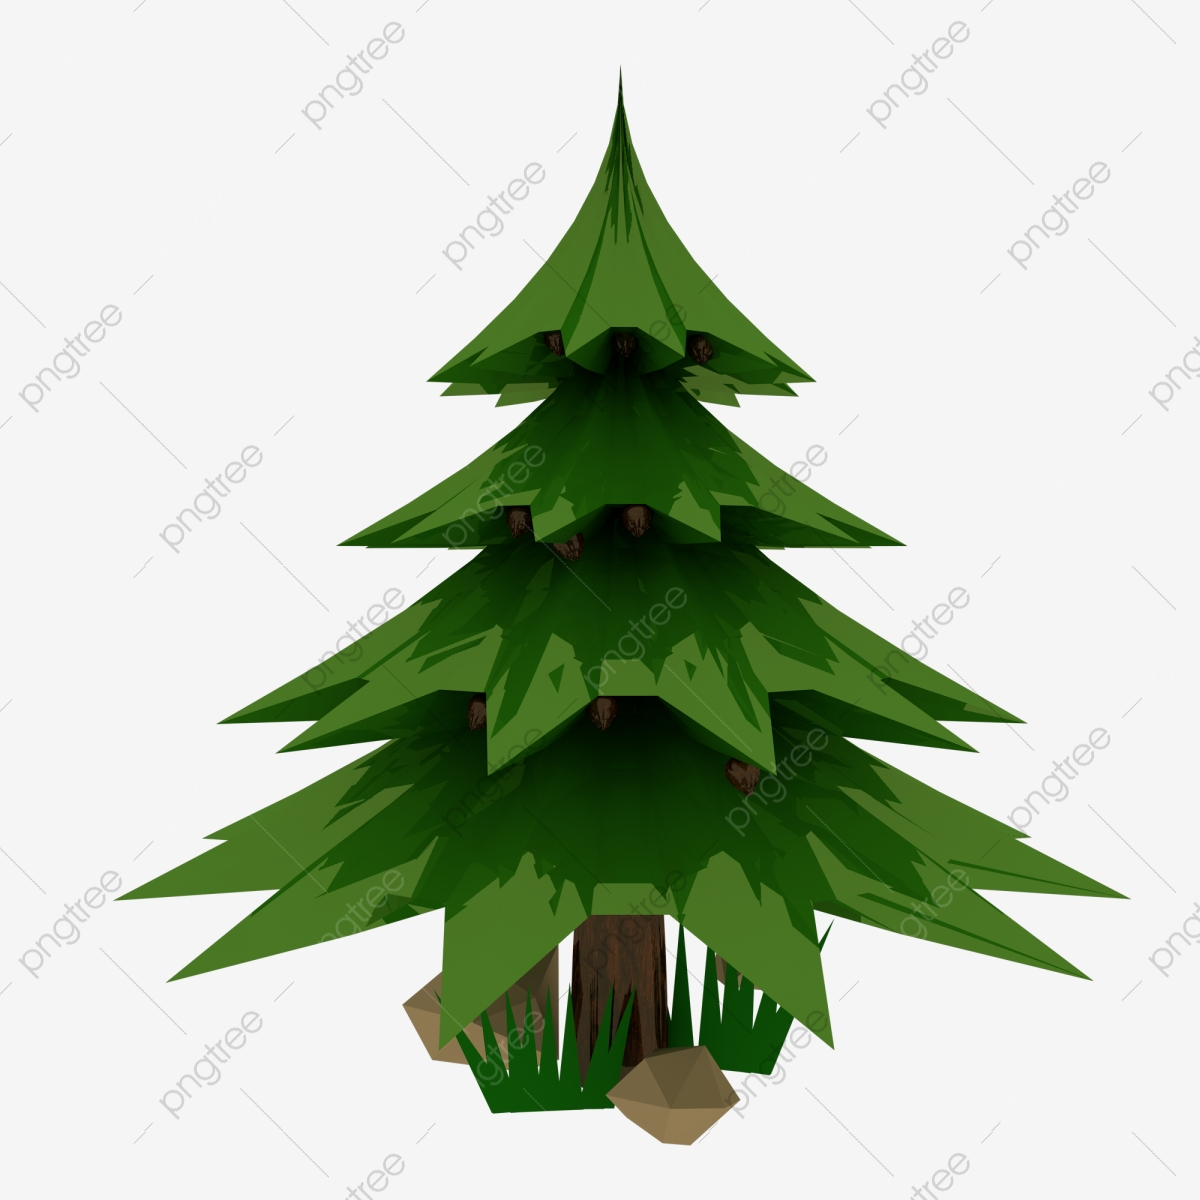 Tall Christmas Tree Clipart.A Tall Pine Tree Tree Clipart Trees Pine Png Transparent